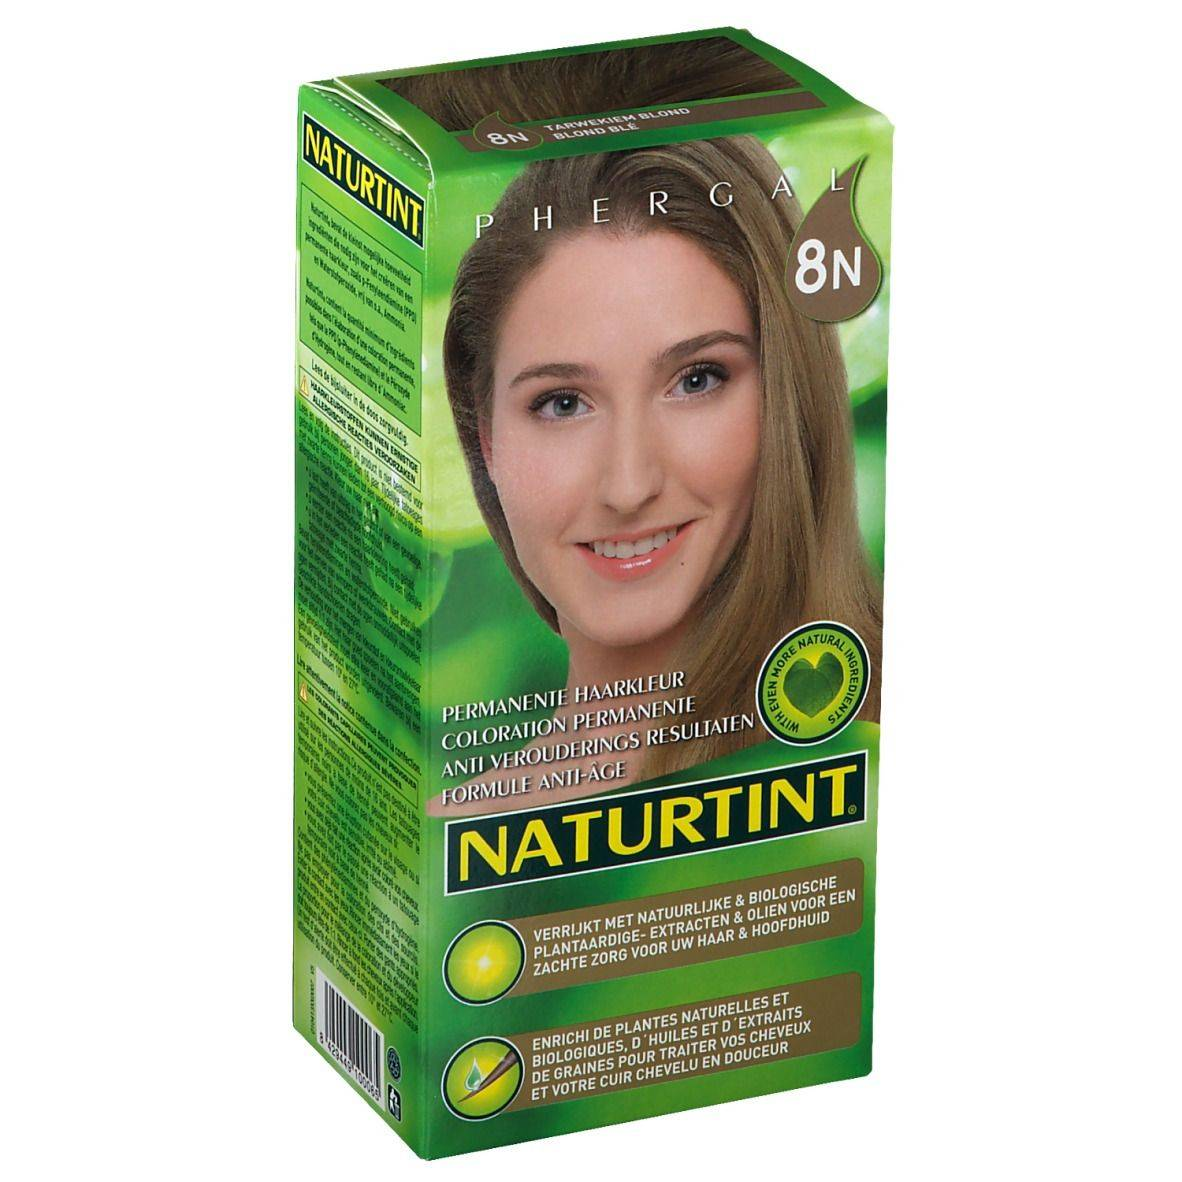 NATURTINT® Coloration Permanente 8N Blond blé ml emballage(s) combi